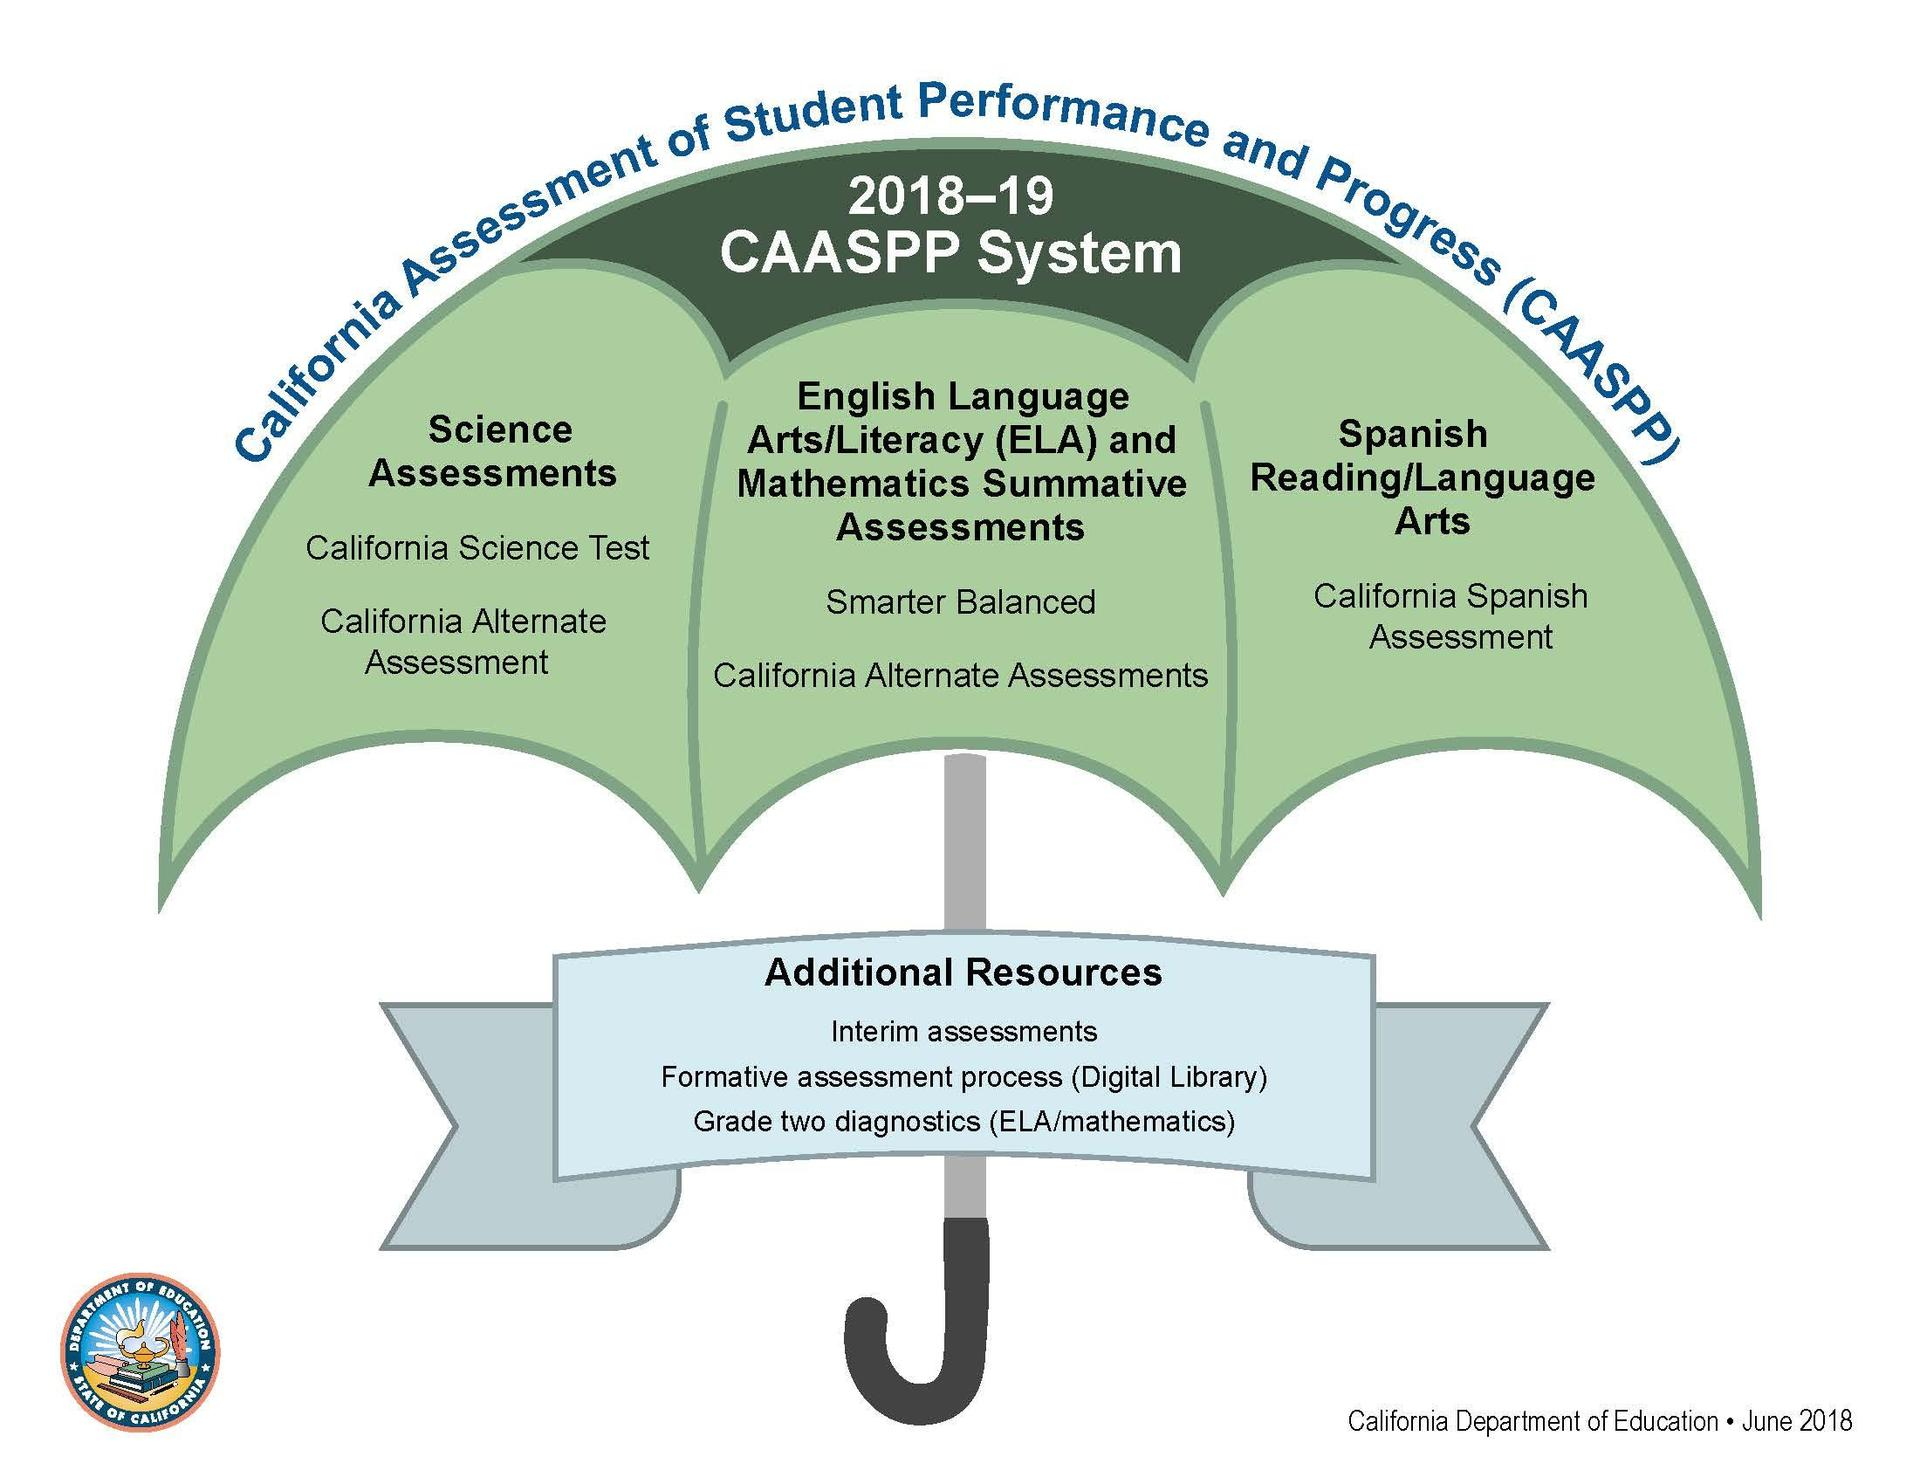 breakdown of the CAASPP System